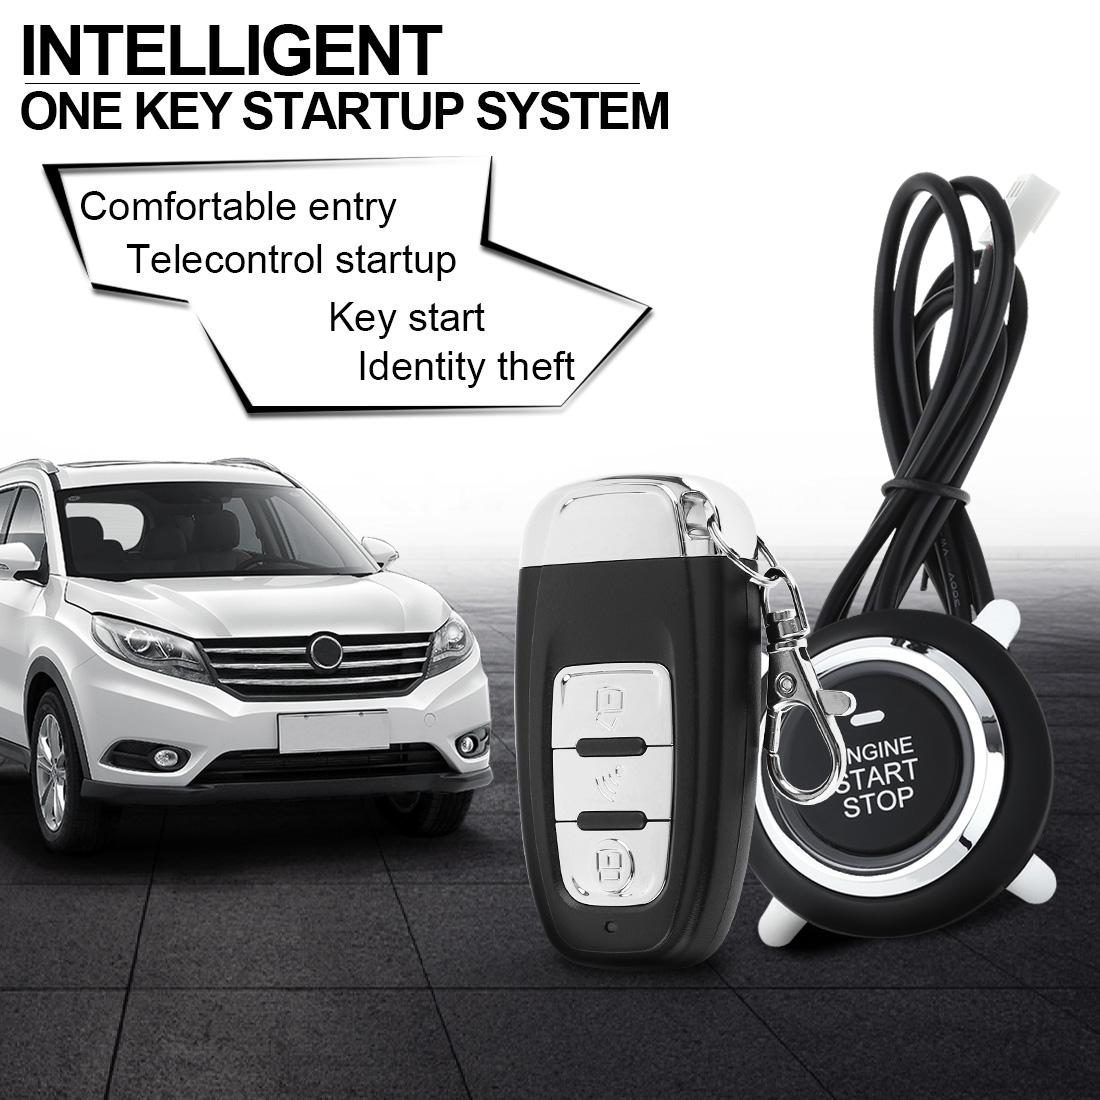 PKE Car Smart Alarm Remote Initiating System Start Stop Engine System with Auto Central Lock and Keyless Entry easyguard pke car alarm system remote engine start stop shock sensor push button start stop window rise up automatically